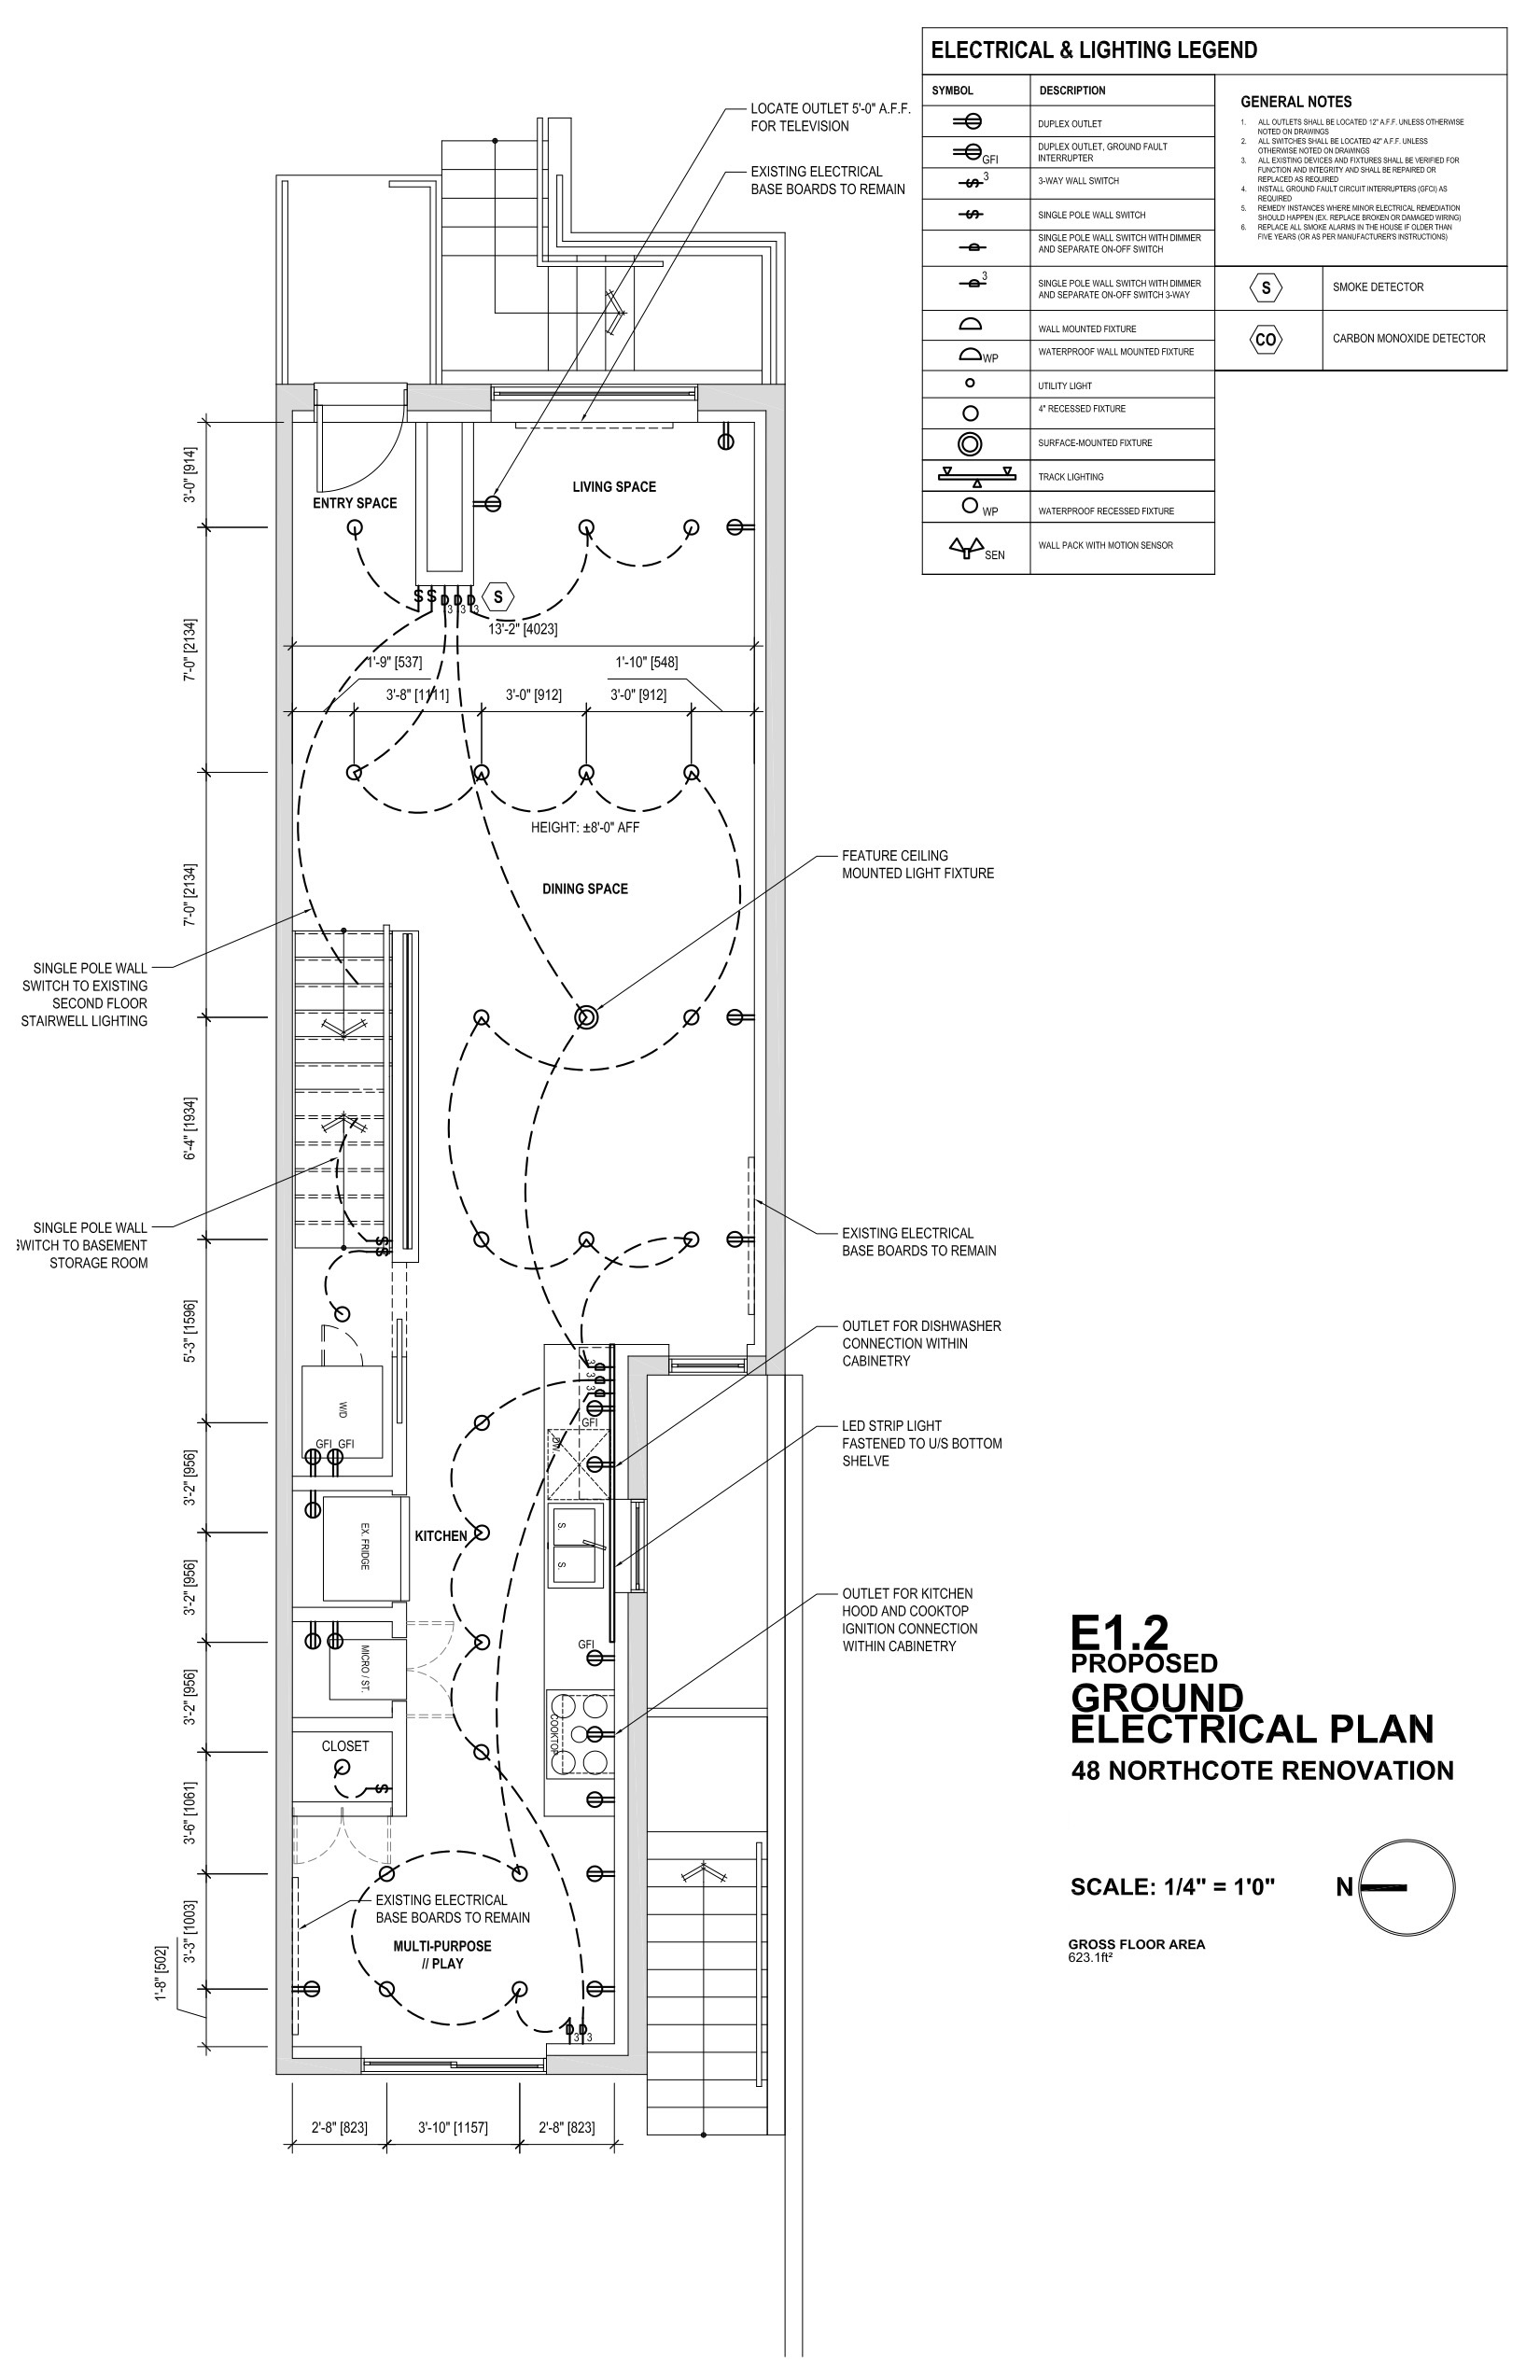 Drawing, Plan, Ground Floor Electrical